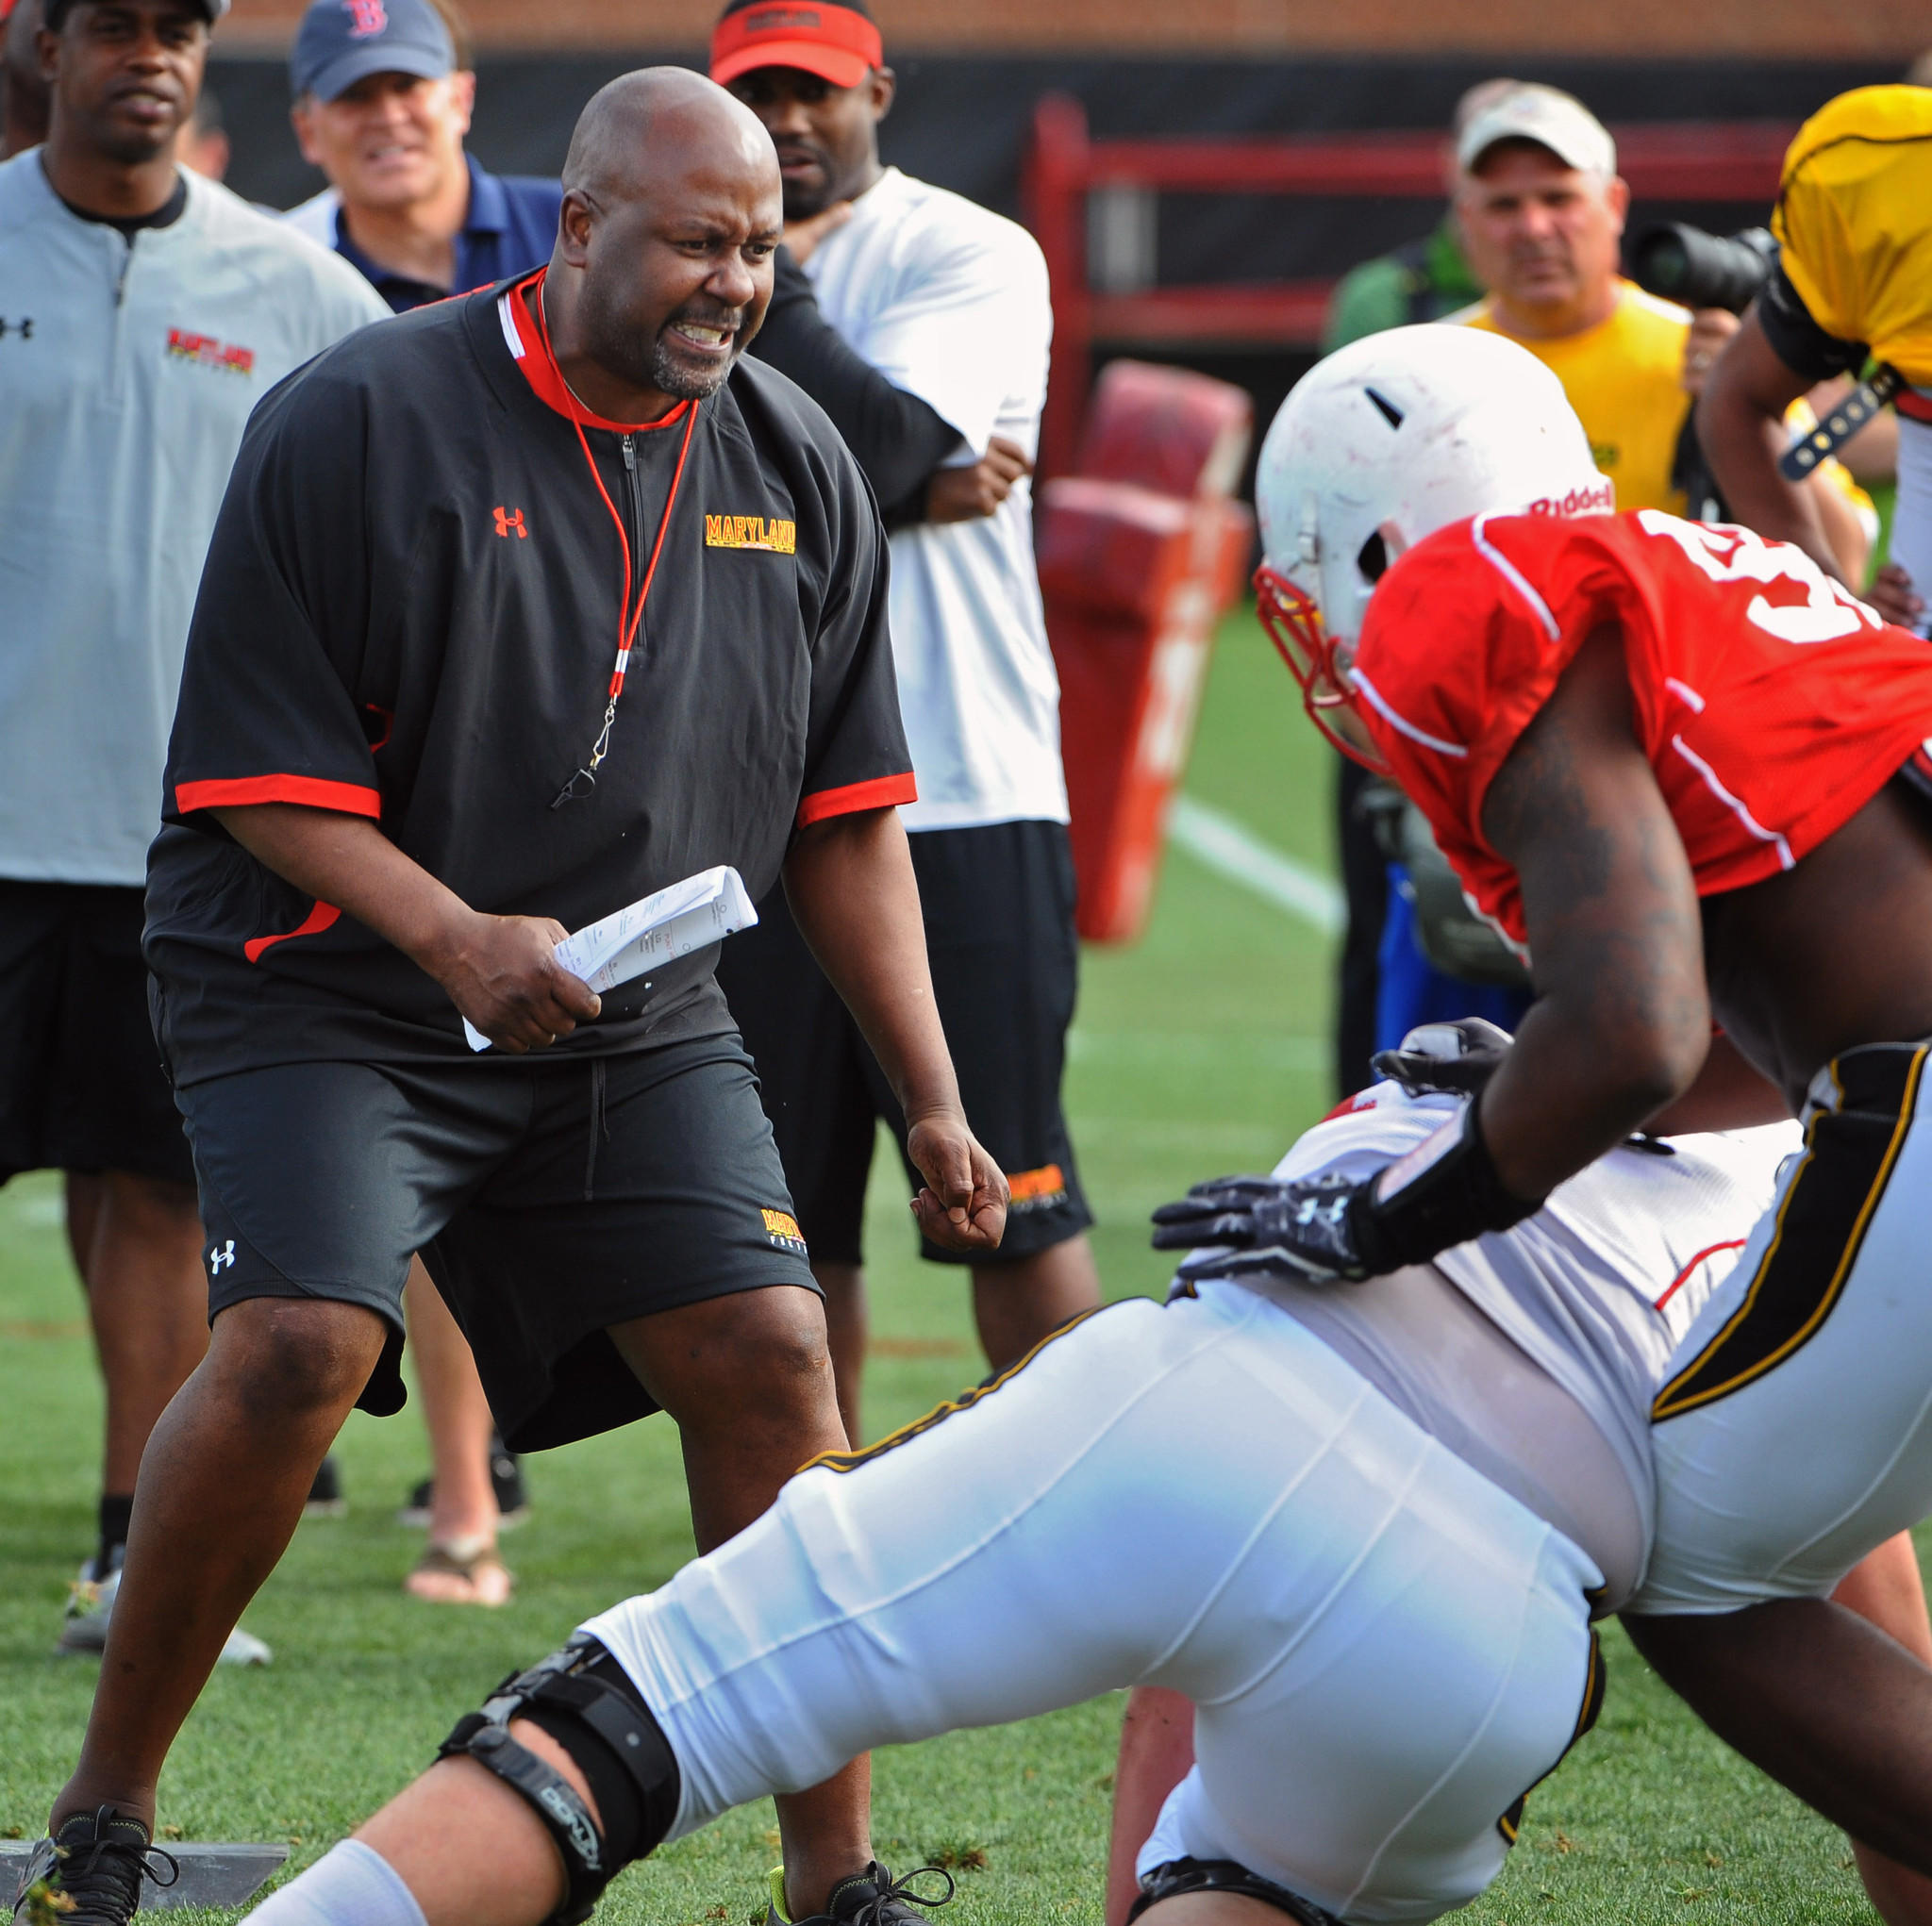 Maryland offensive coordinator Mike Locksley watches blocking drills during the team's spring practice in 2012.